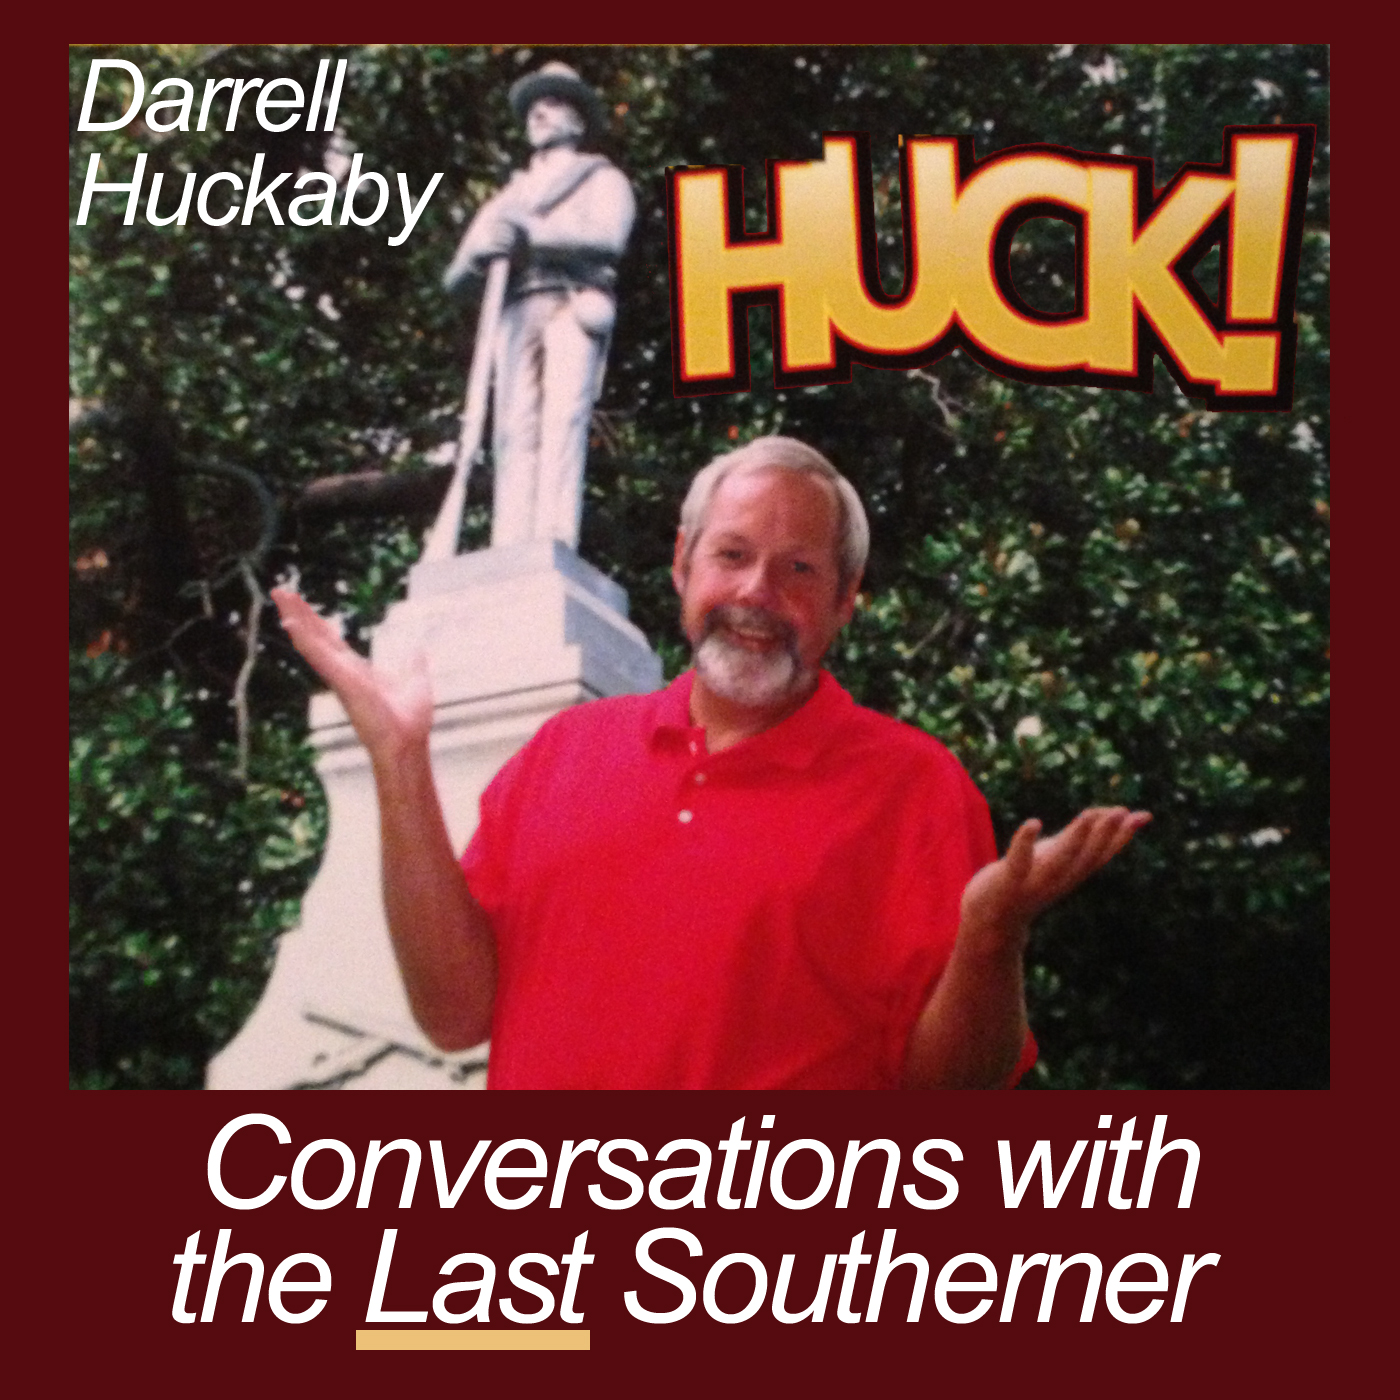 Huckcast: Conversations with The Last Southerner | Southern Life | Southern Humor | Southern Food | History | Darrell Huckaby